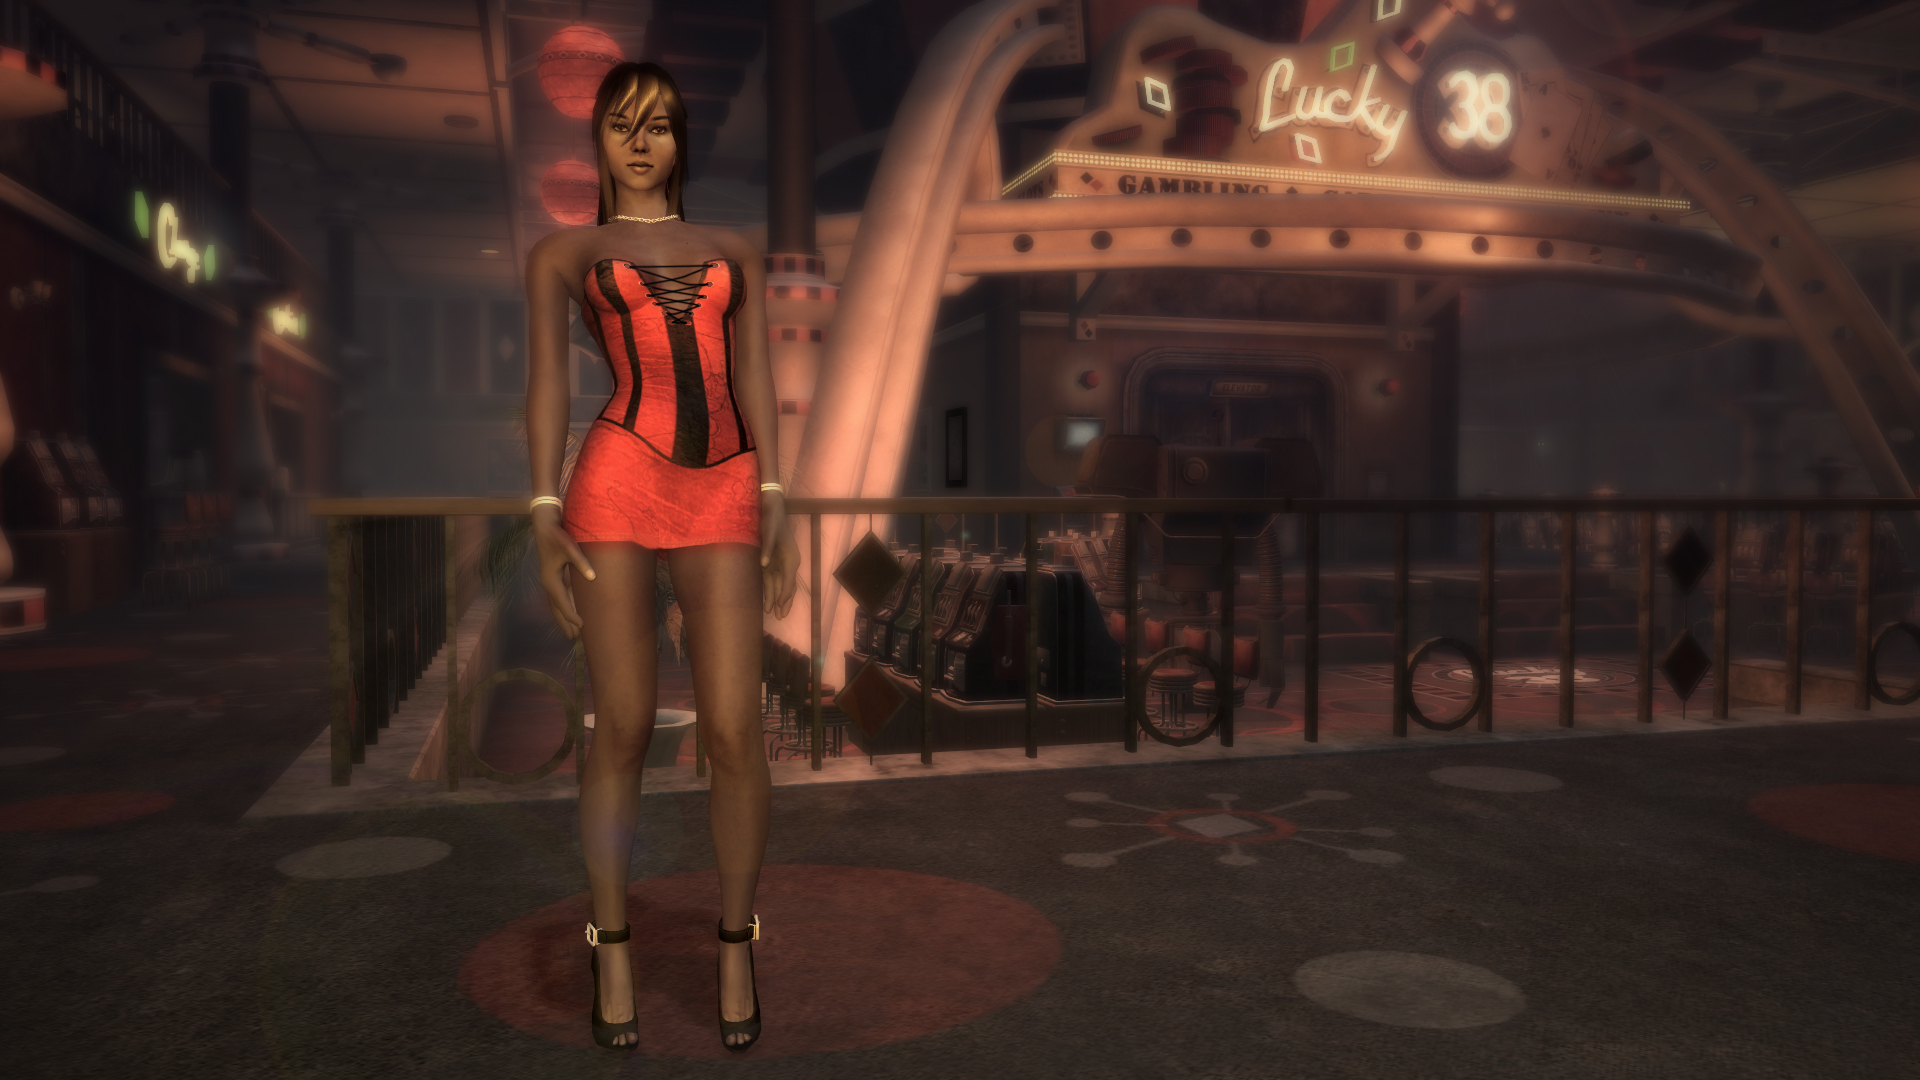 The Corset   New Vegas Uploaded Images   The Nexus Forums HD Wallpaper